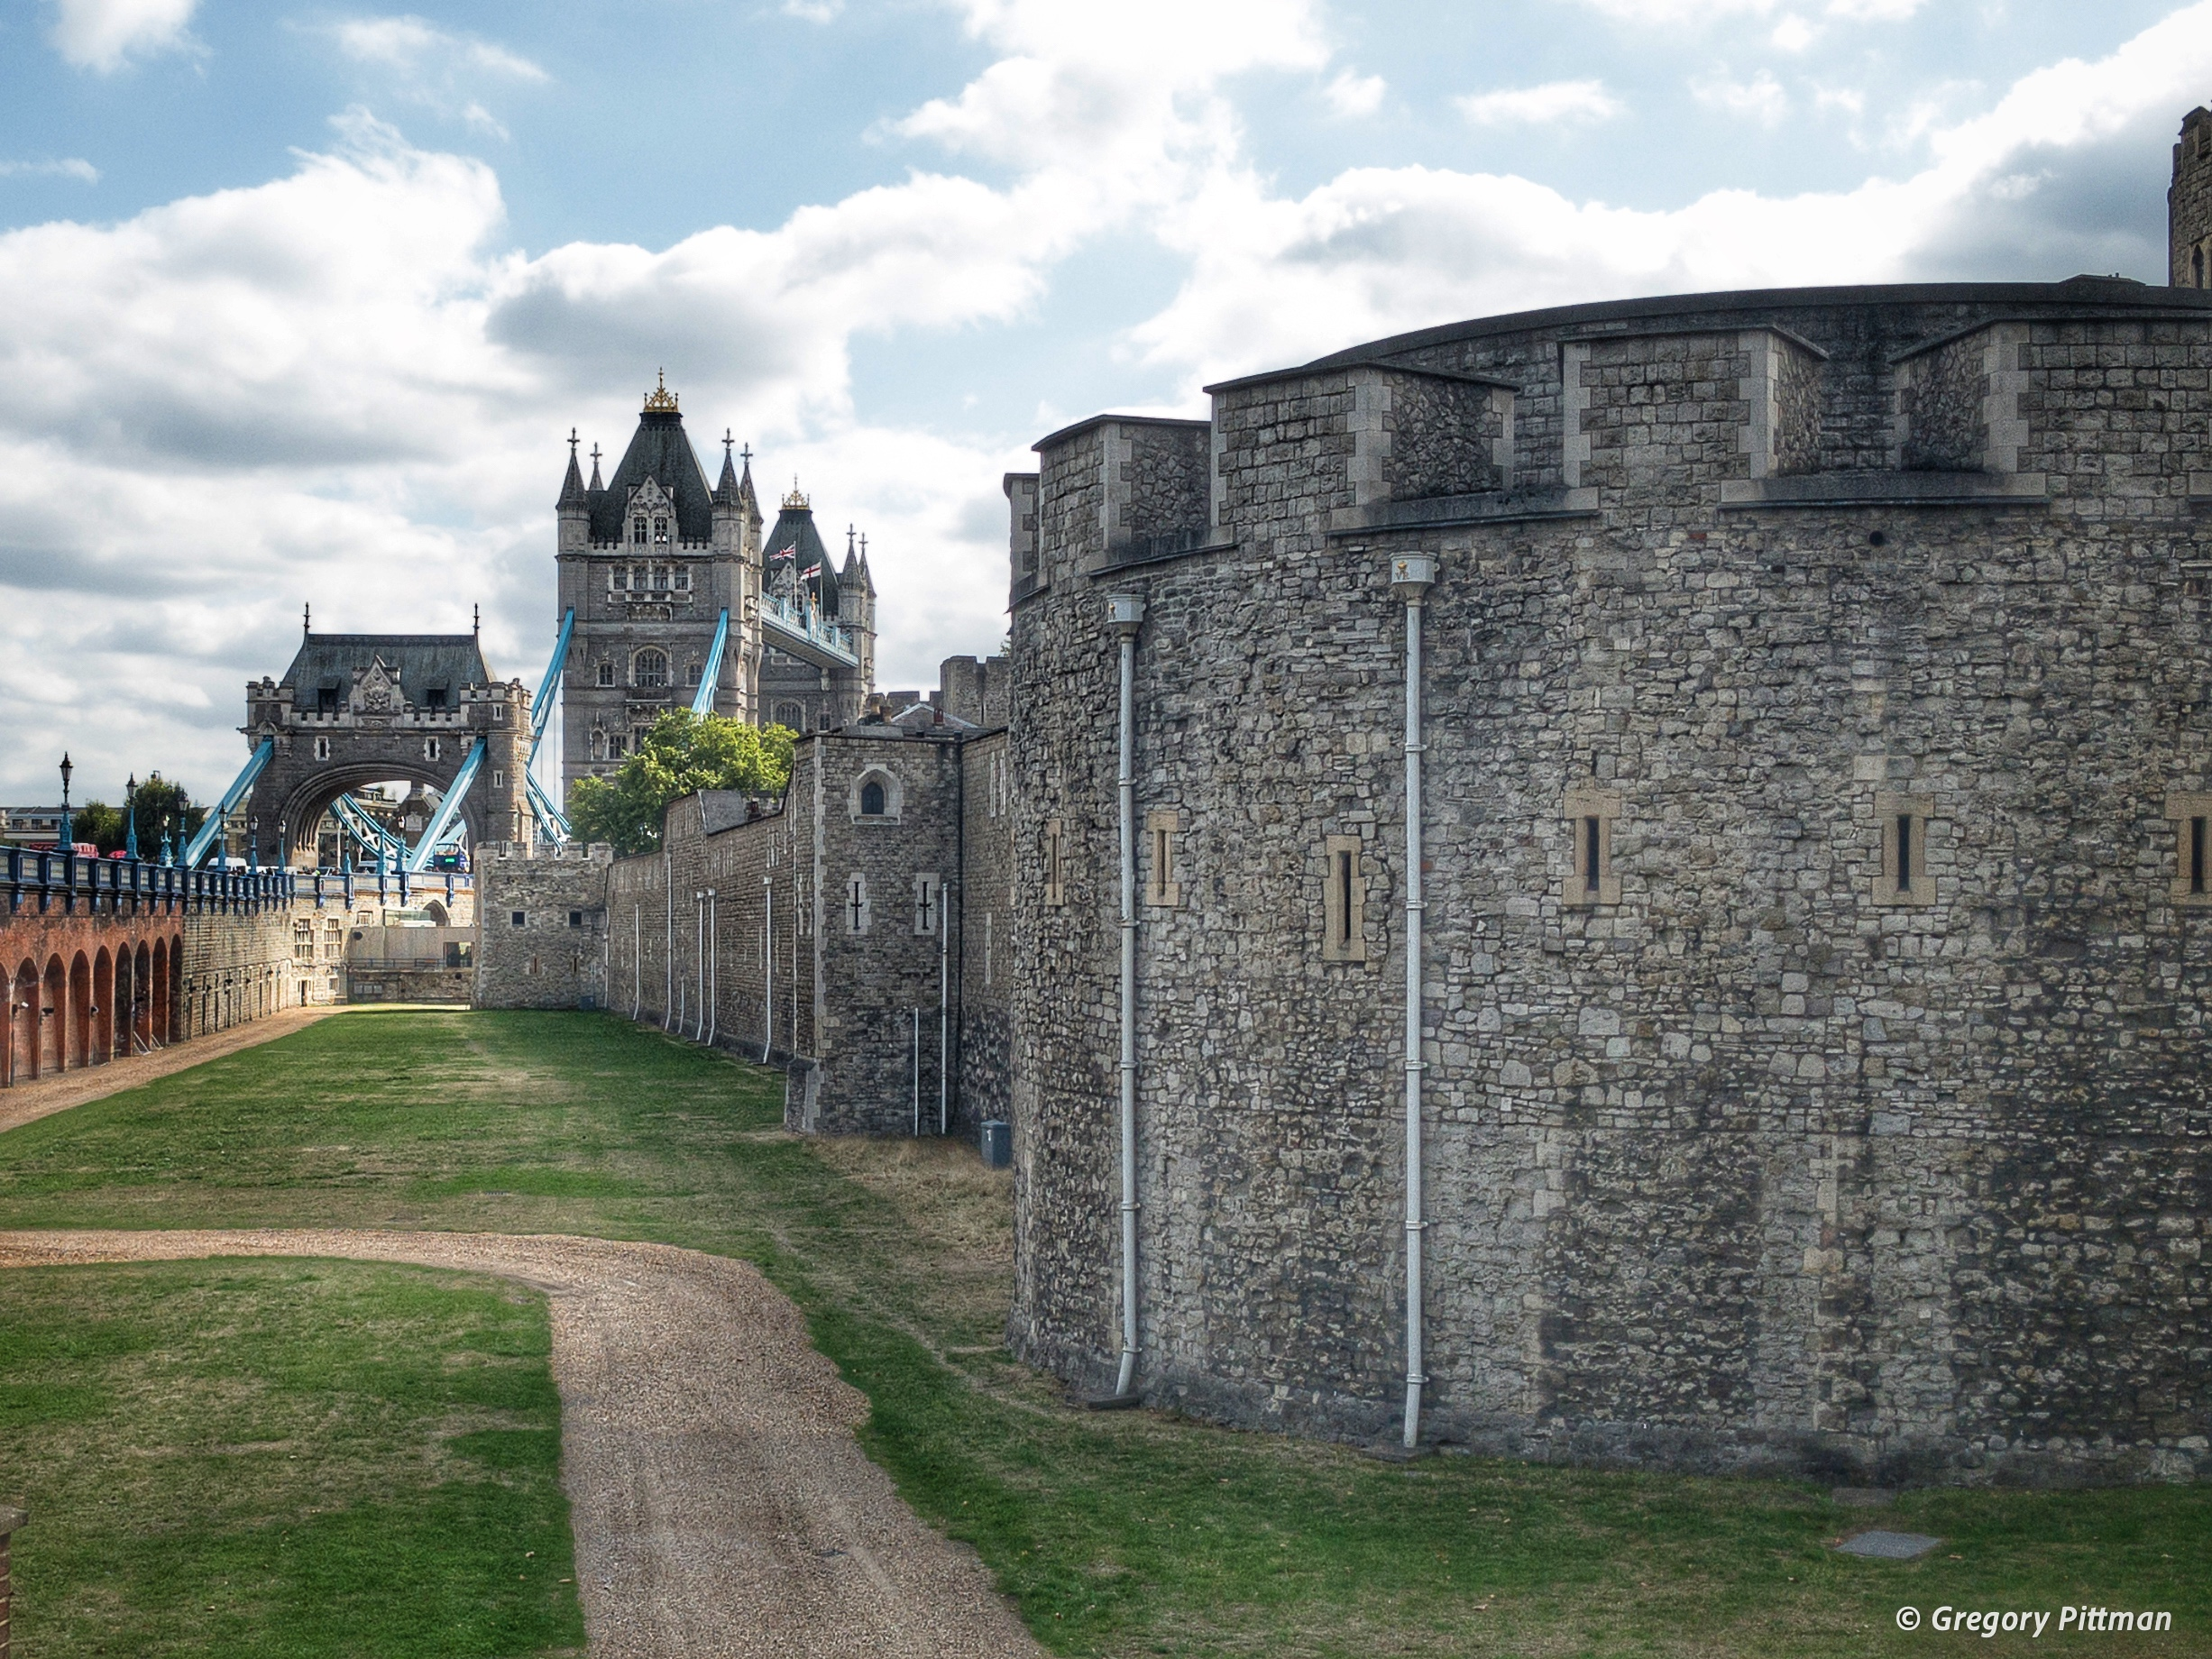 The Outer Wall of the Tower of London, England